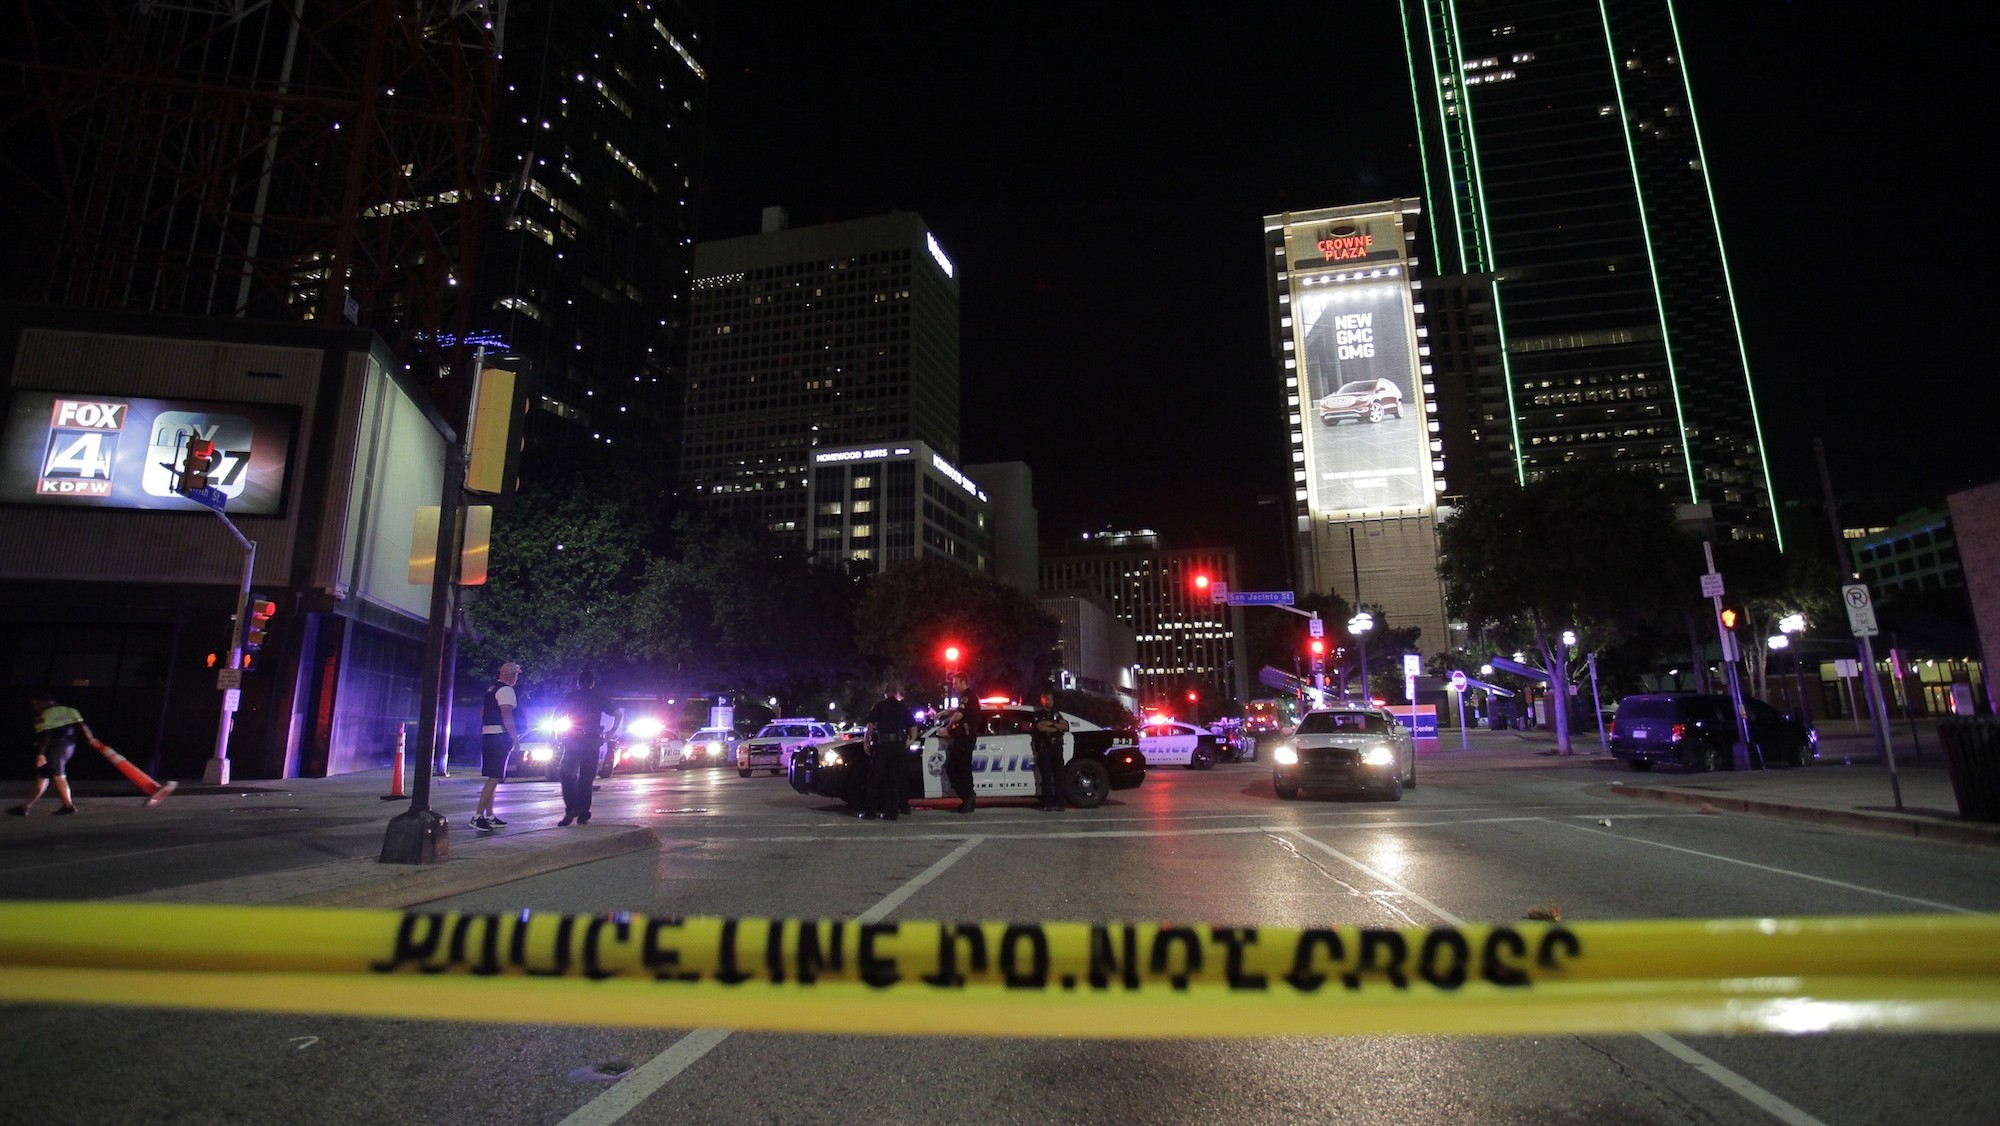 'I did not think I would make it home': Witnesses describe the Dallas ambush